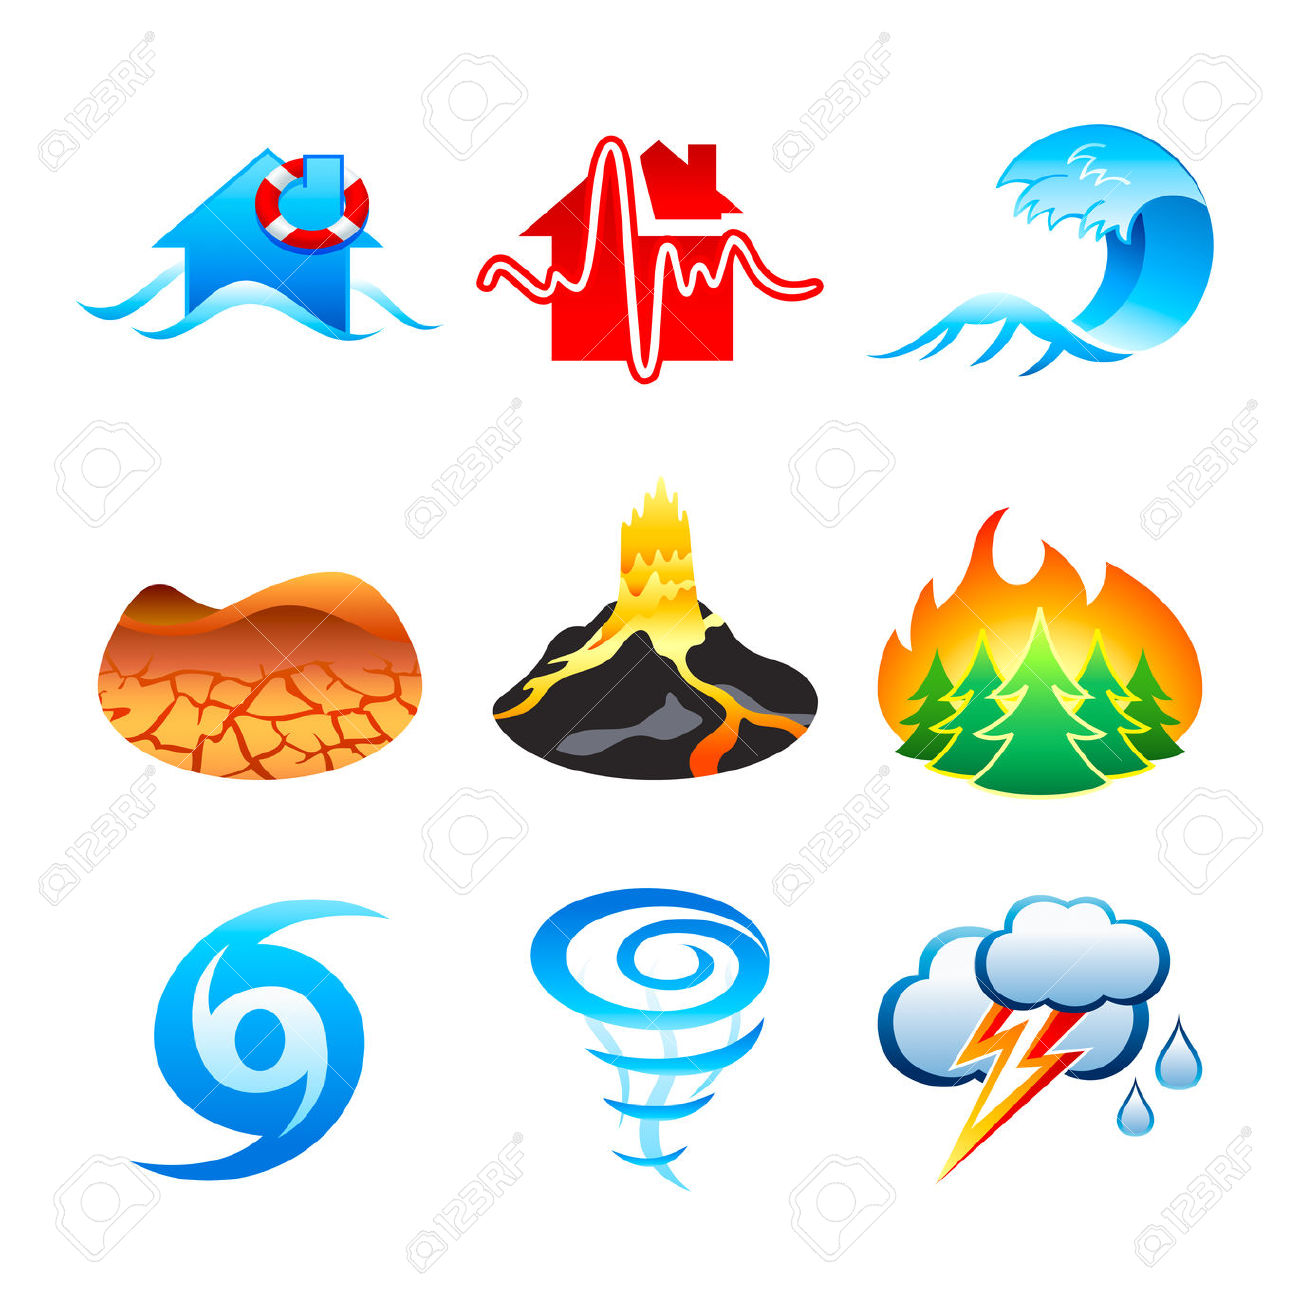 Natural Disasters Clipart